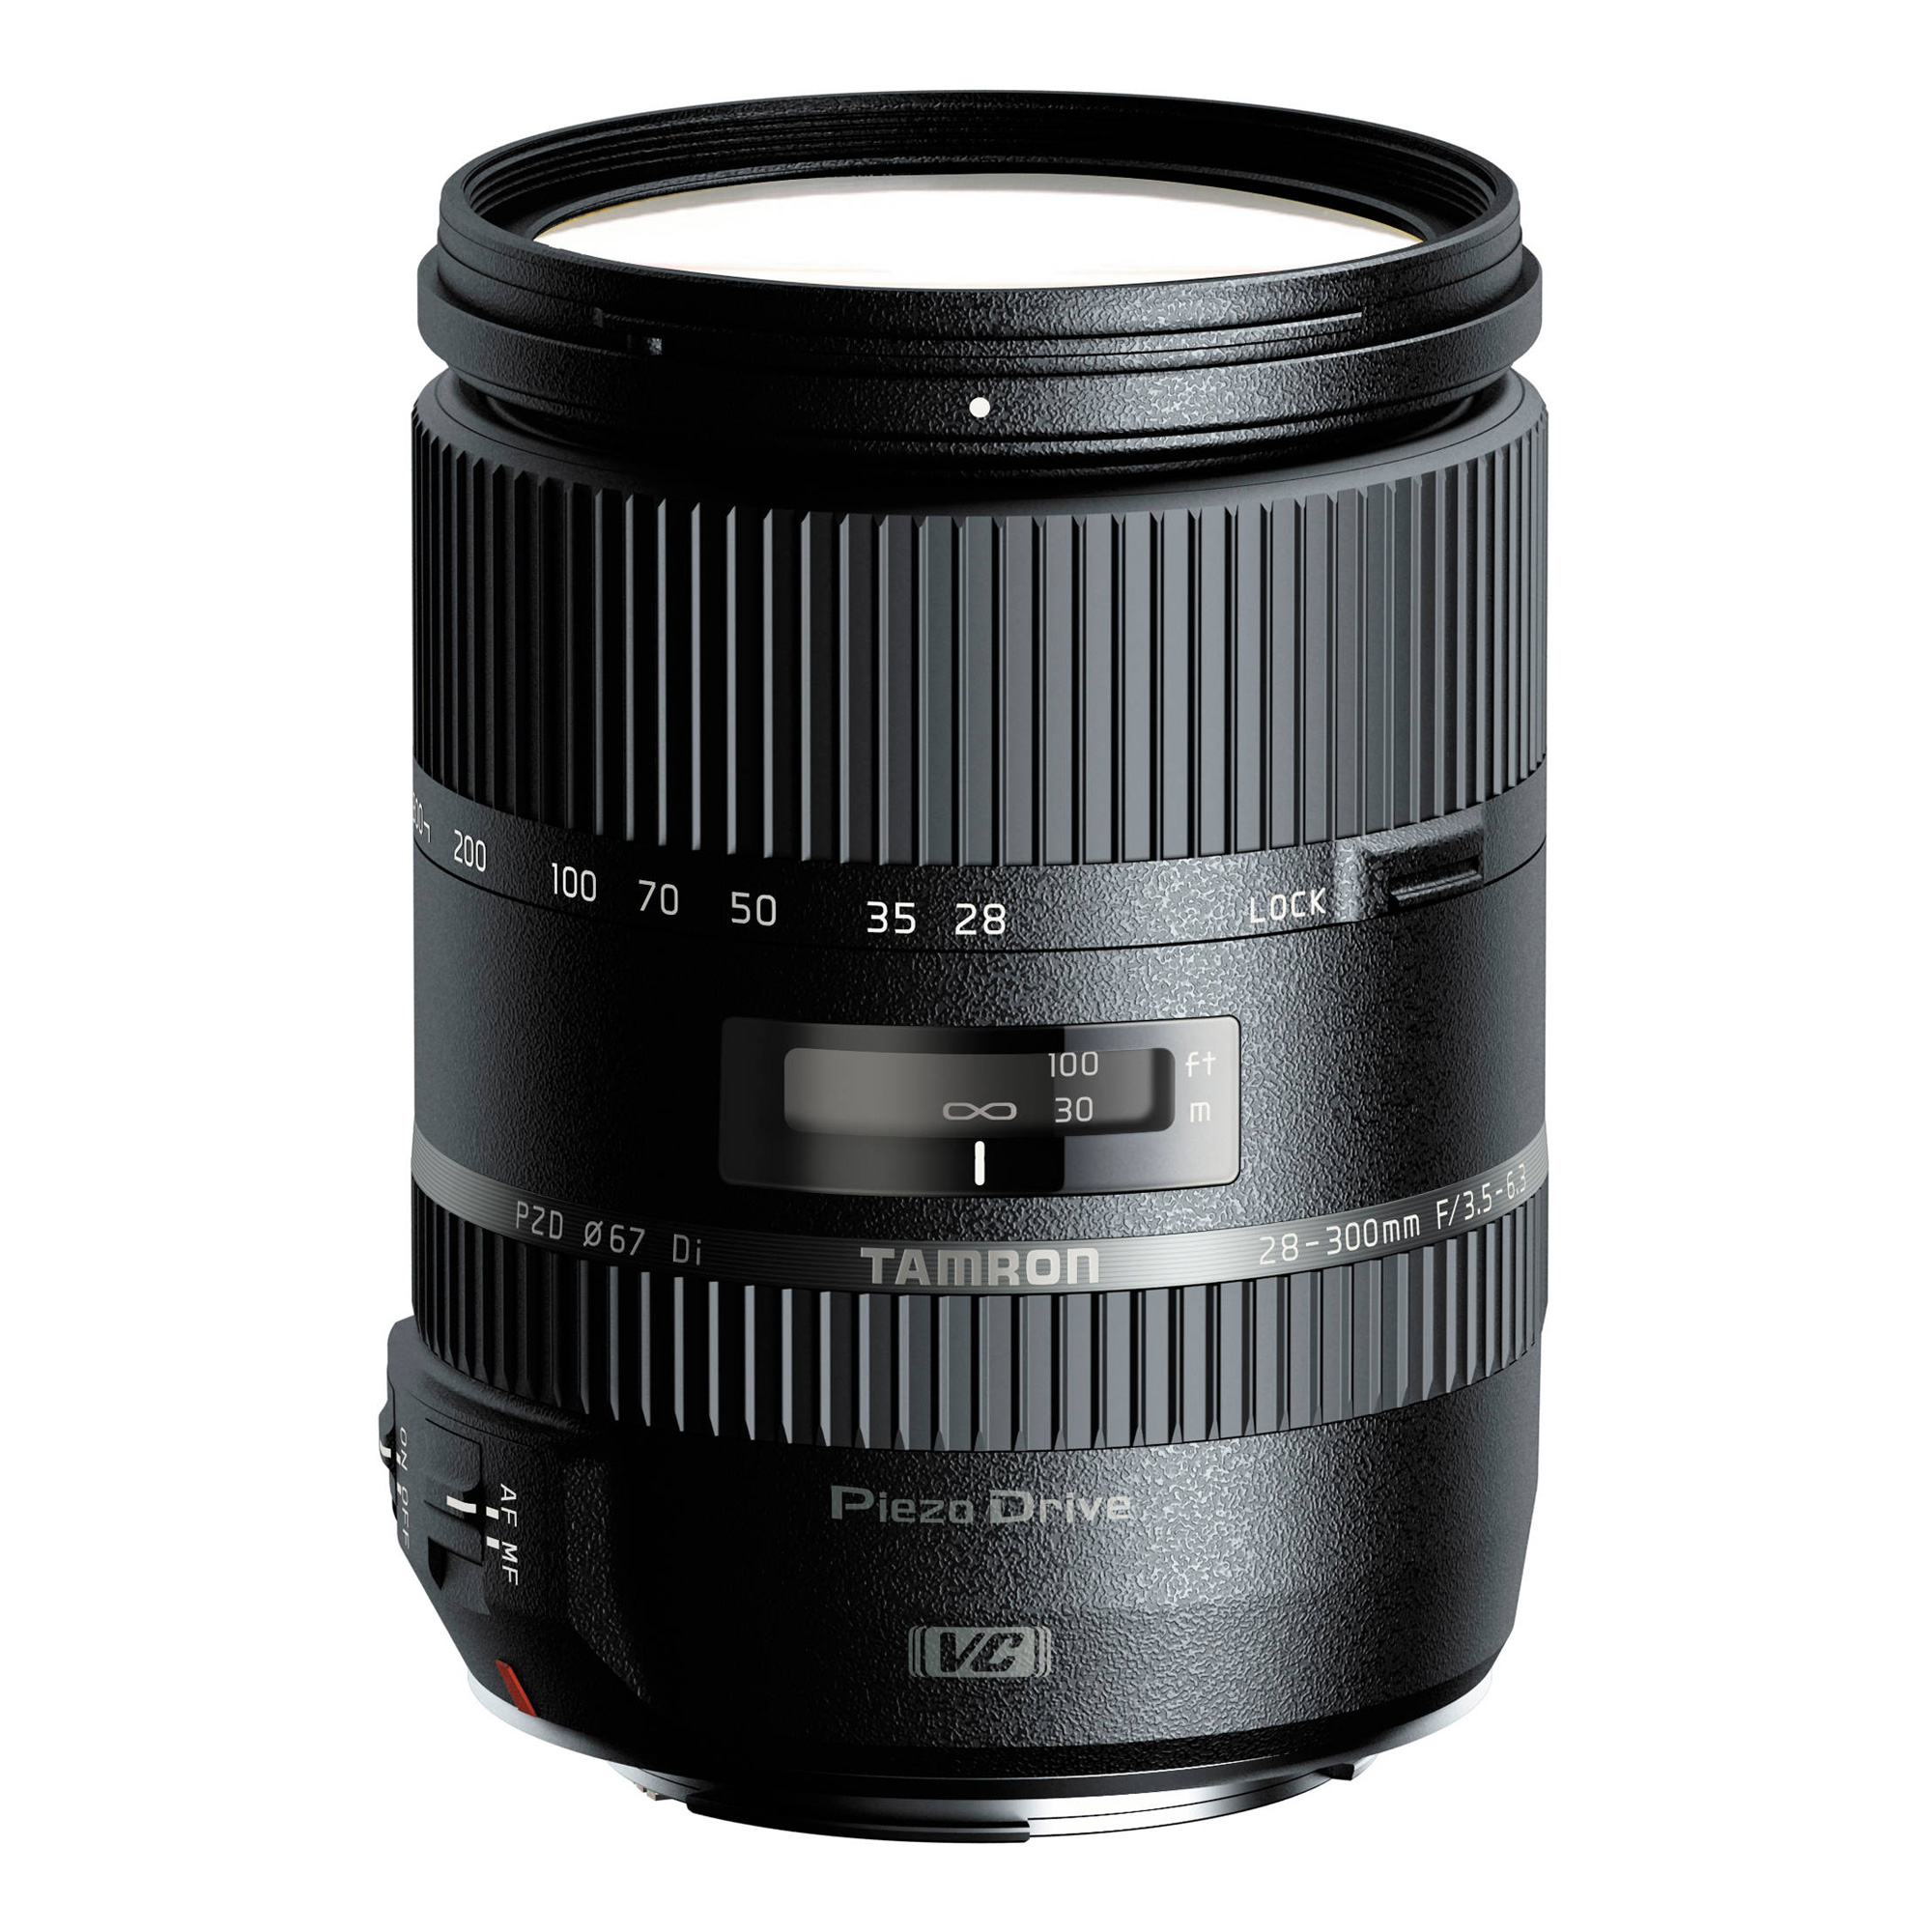 28-300mm f/3.5-6.3 Di PZD Lens for Sony